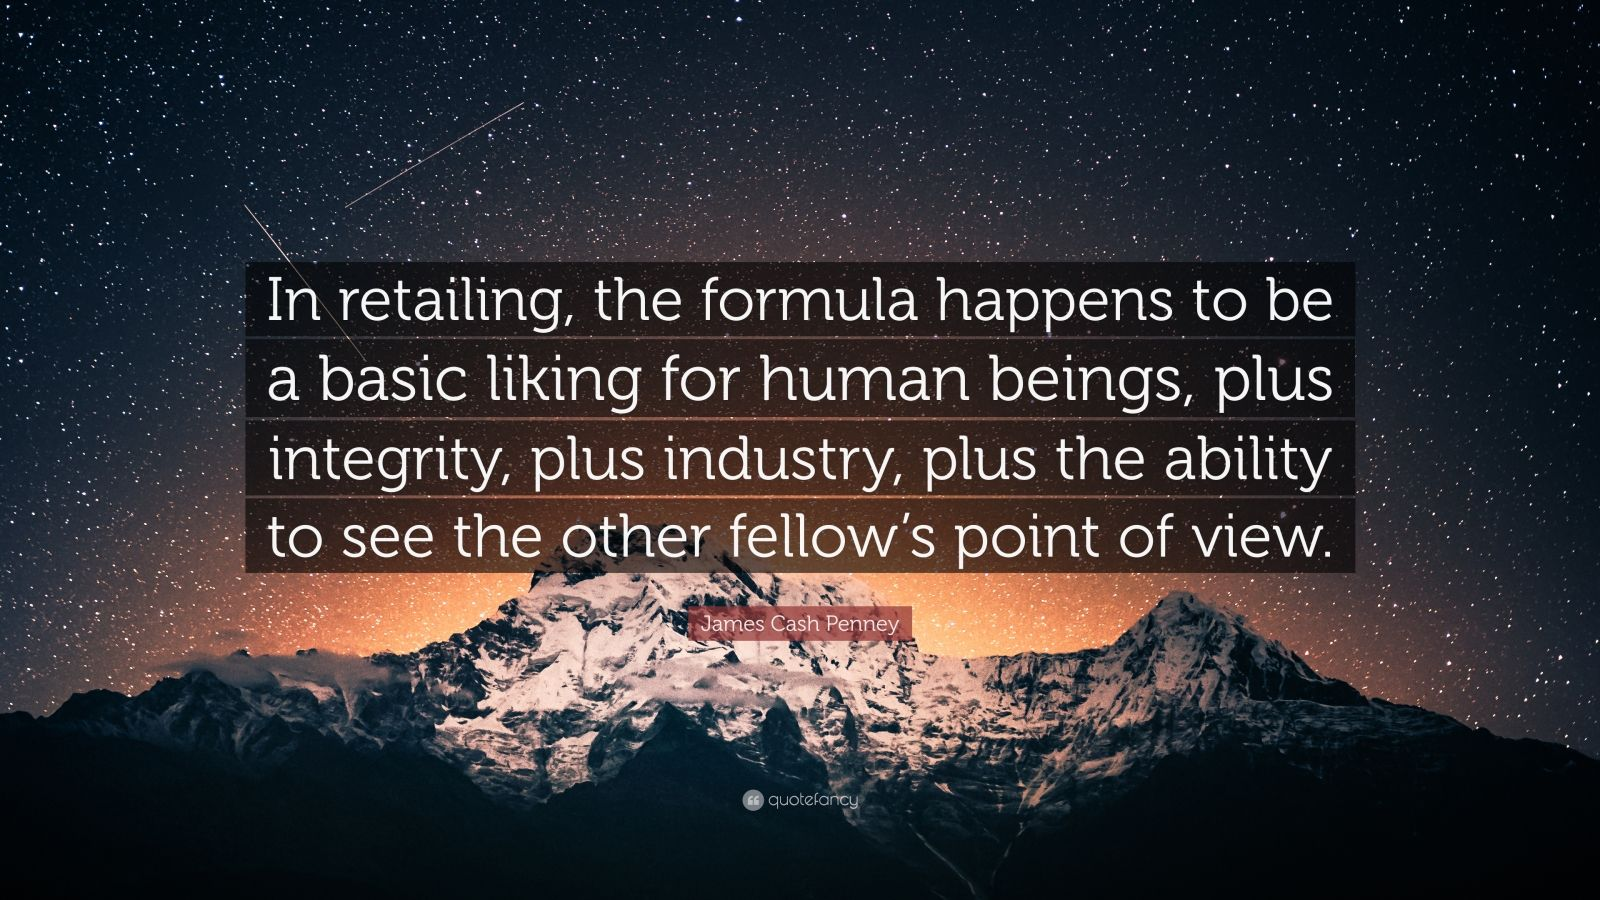 "James Cash Penney Quote: ""In retailing, the formula happens to be a basic liking for human beings, plus integrity, plus industry, plus the ability to see the other fellow's point of view."""